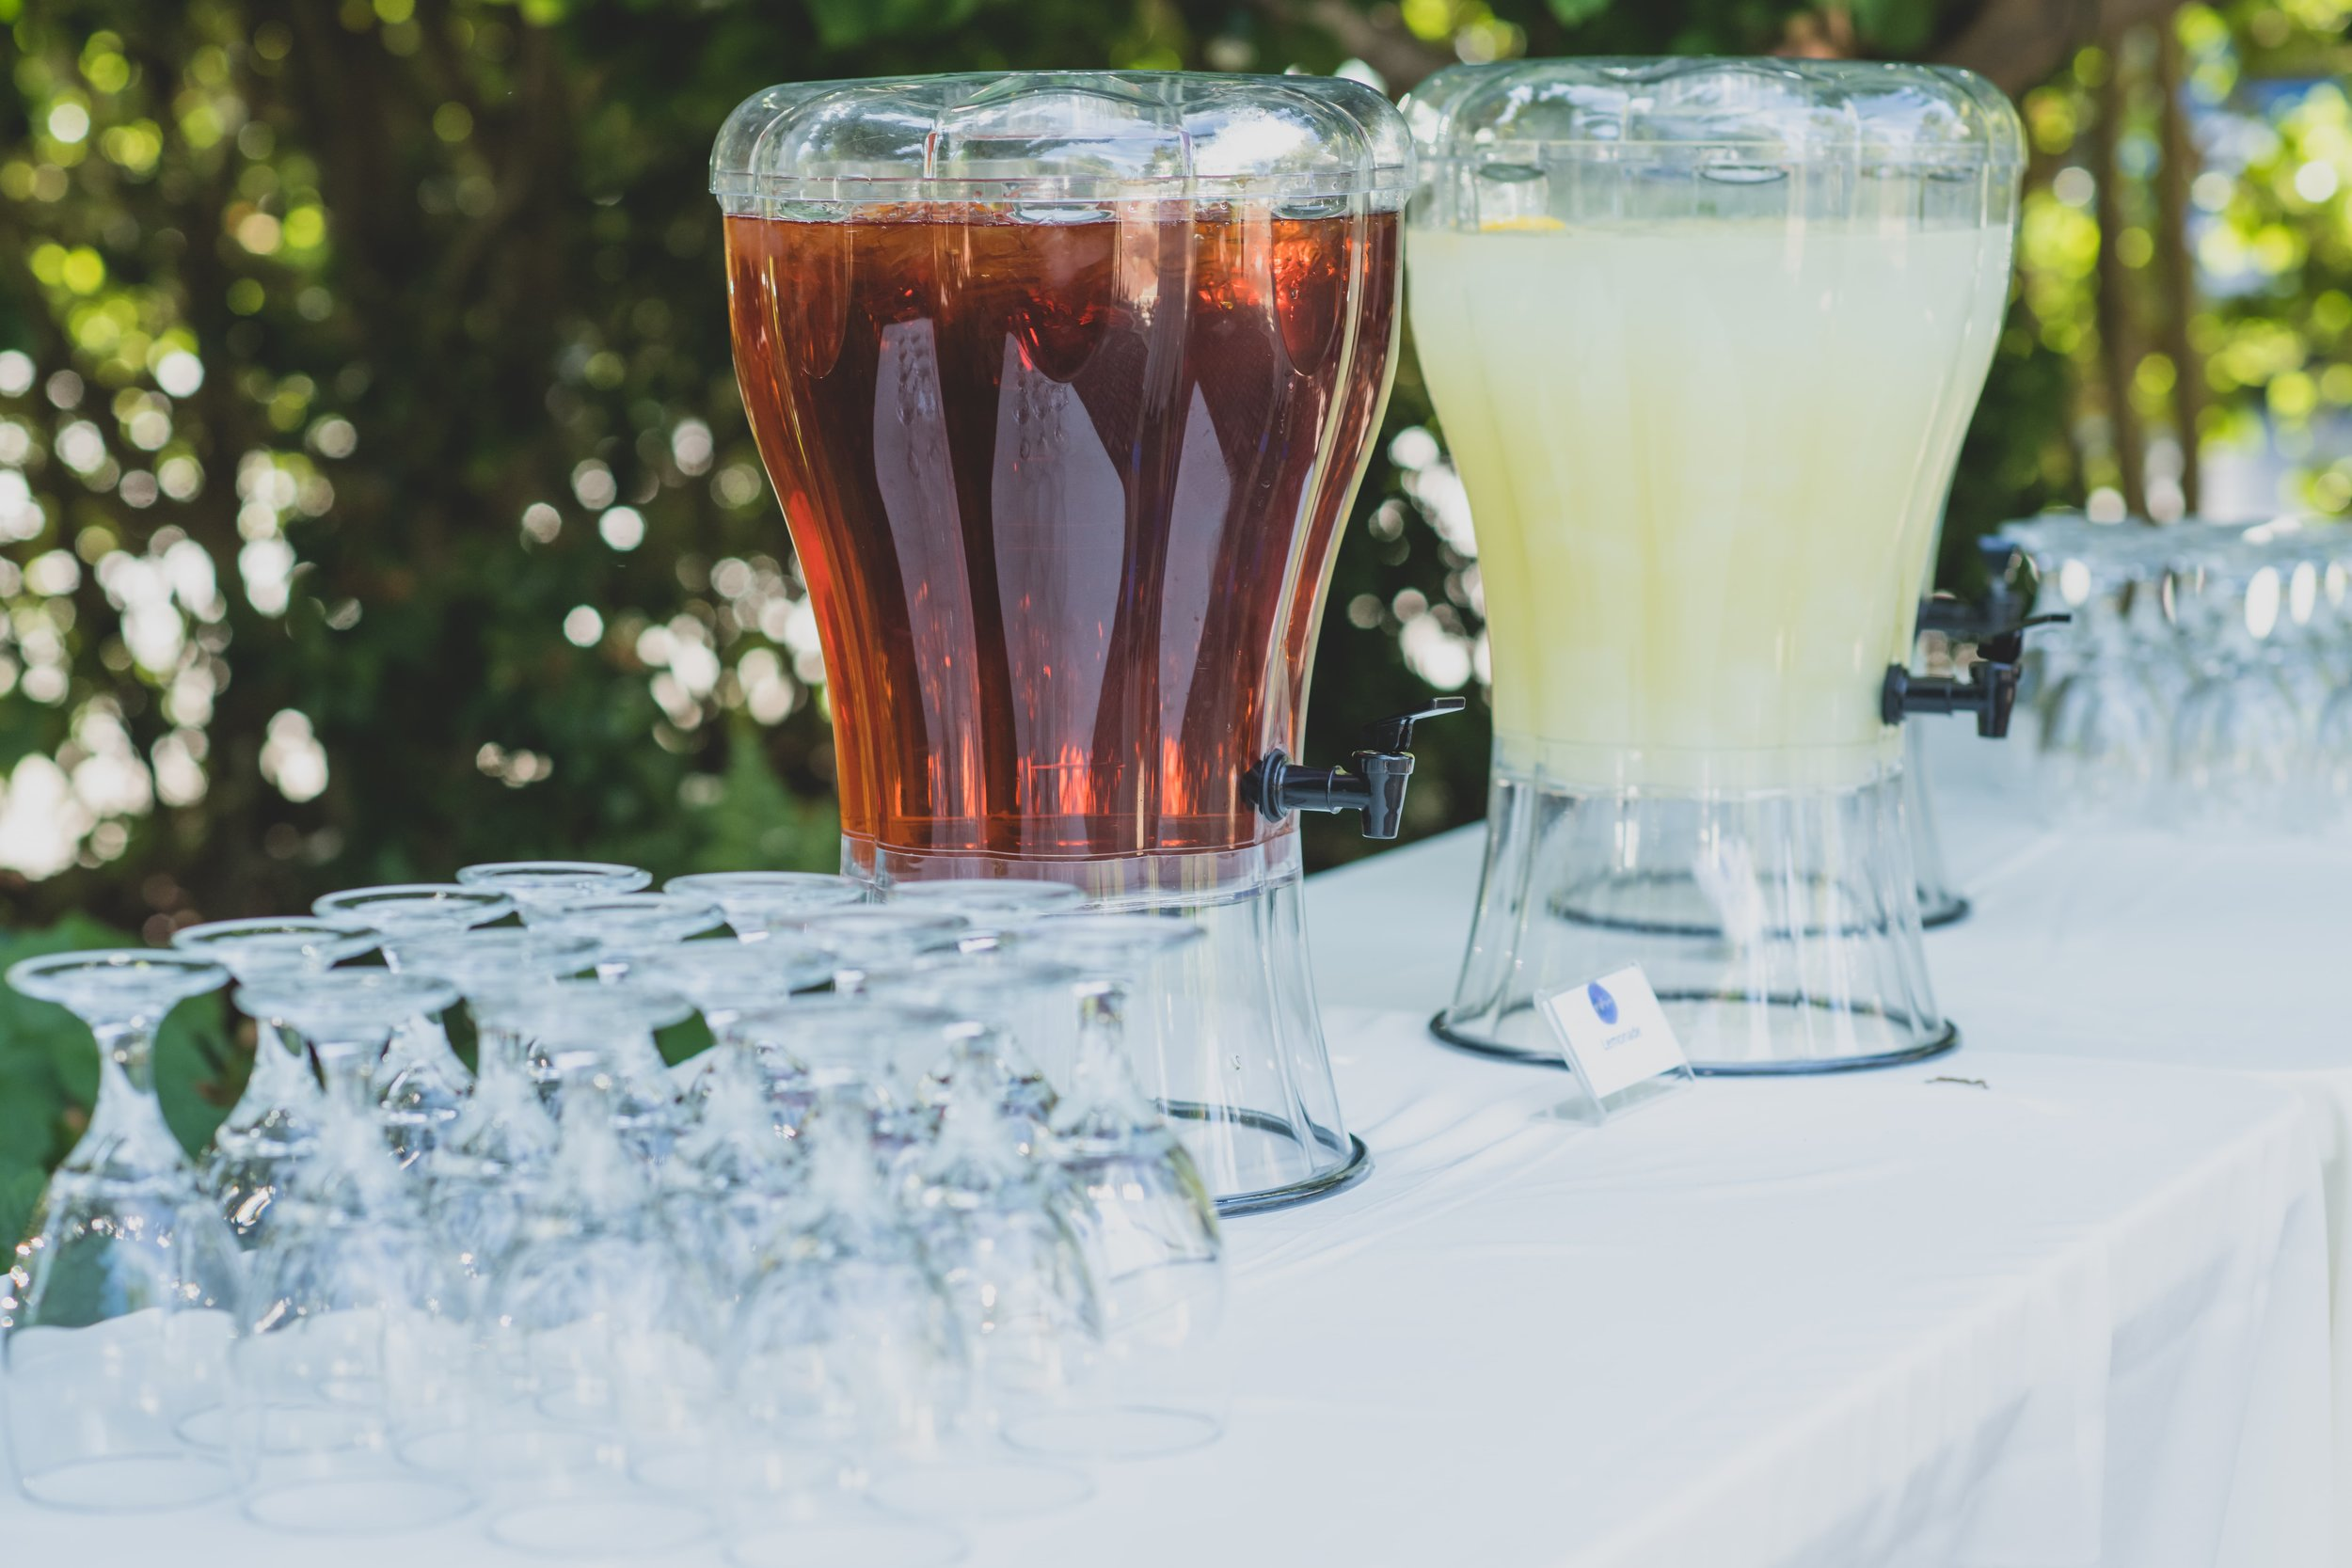 Last Minute Checklist: Things to Know Before Your Outdoor Wedding - A refreshment table setup for an outdoor wedding ceremony.